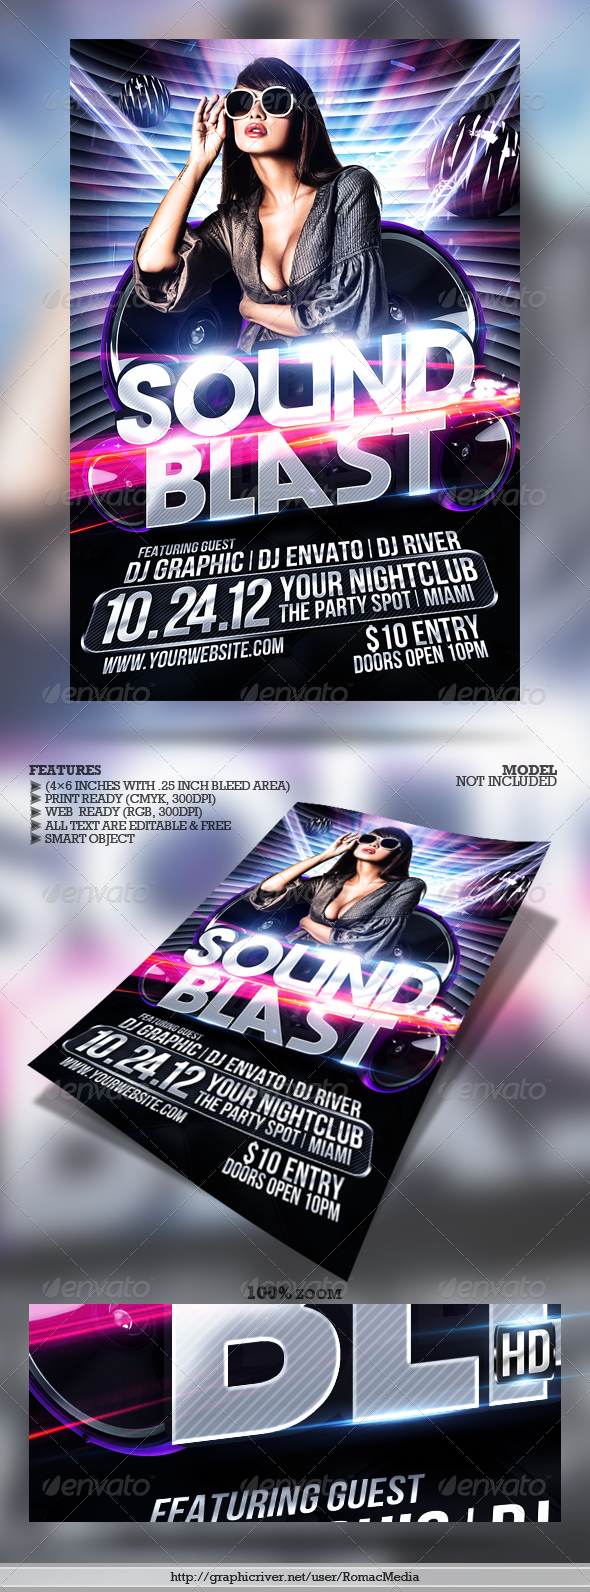 Club Sessions l Sound Blast Party Flyer - Clubs & Parties Events